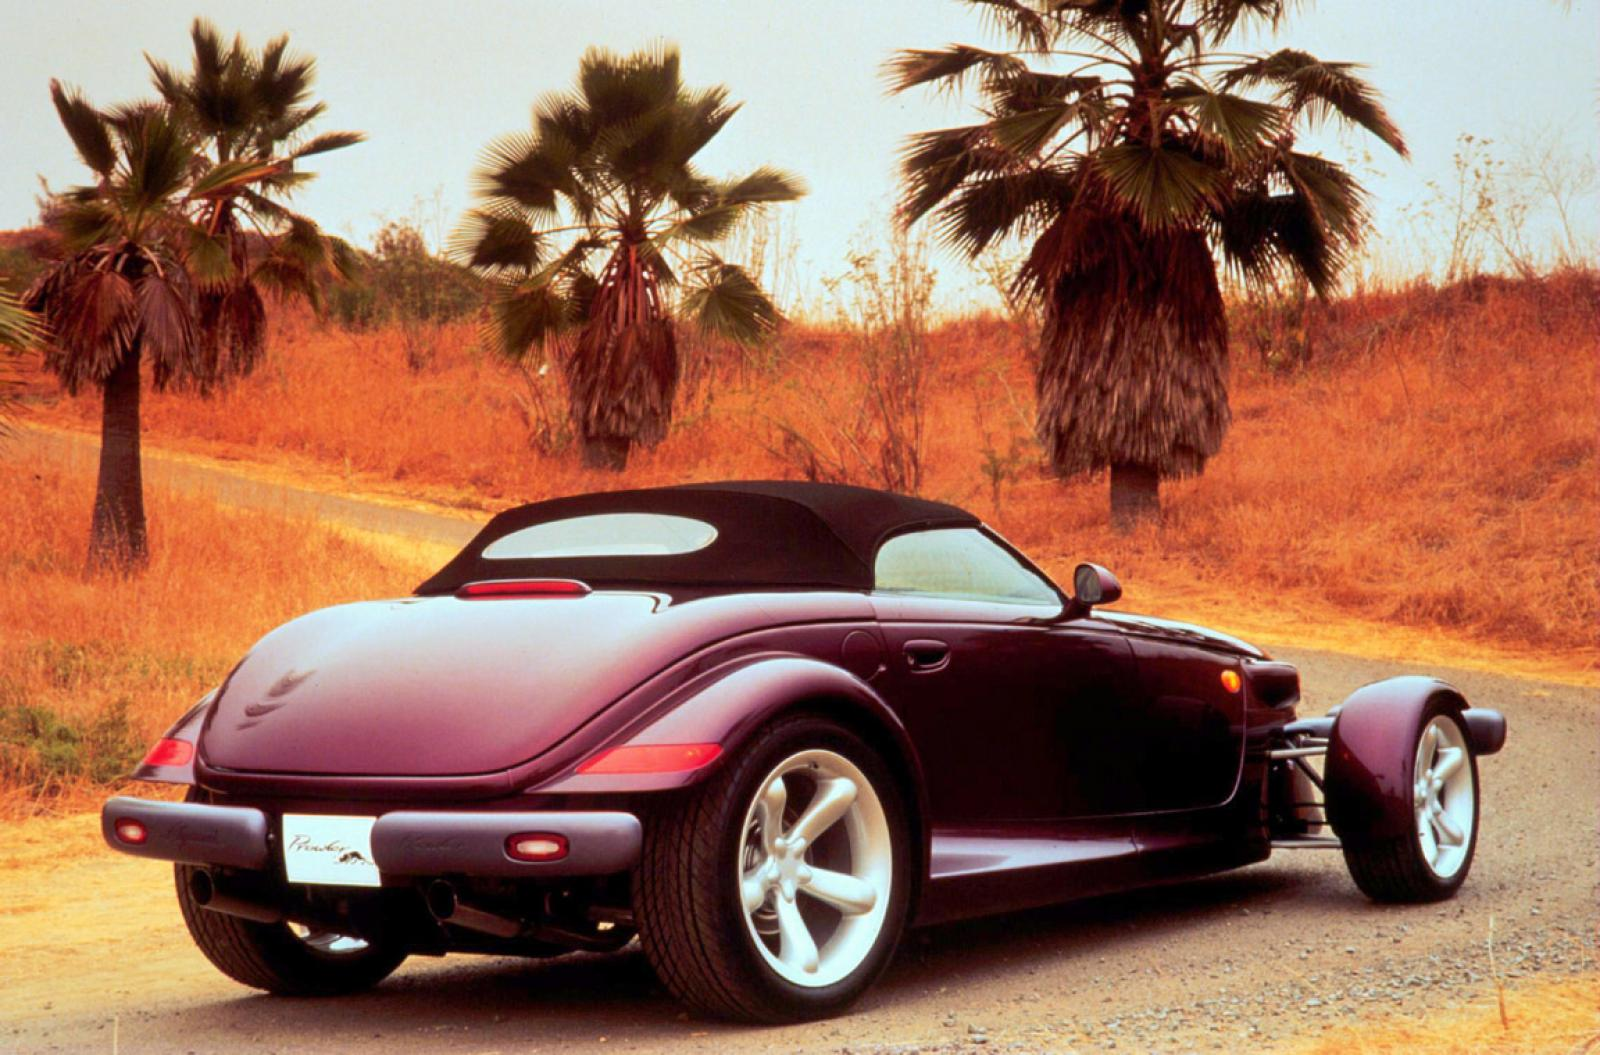 1997 plymouth prowler 11 plymouth prowler 11 800 1024 1280 1600 origin